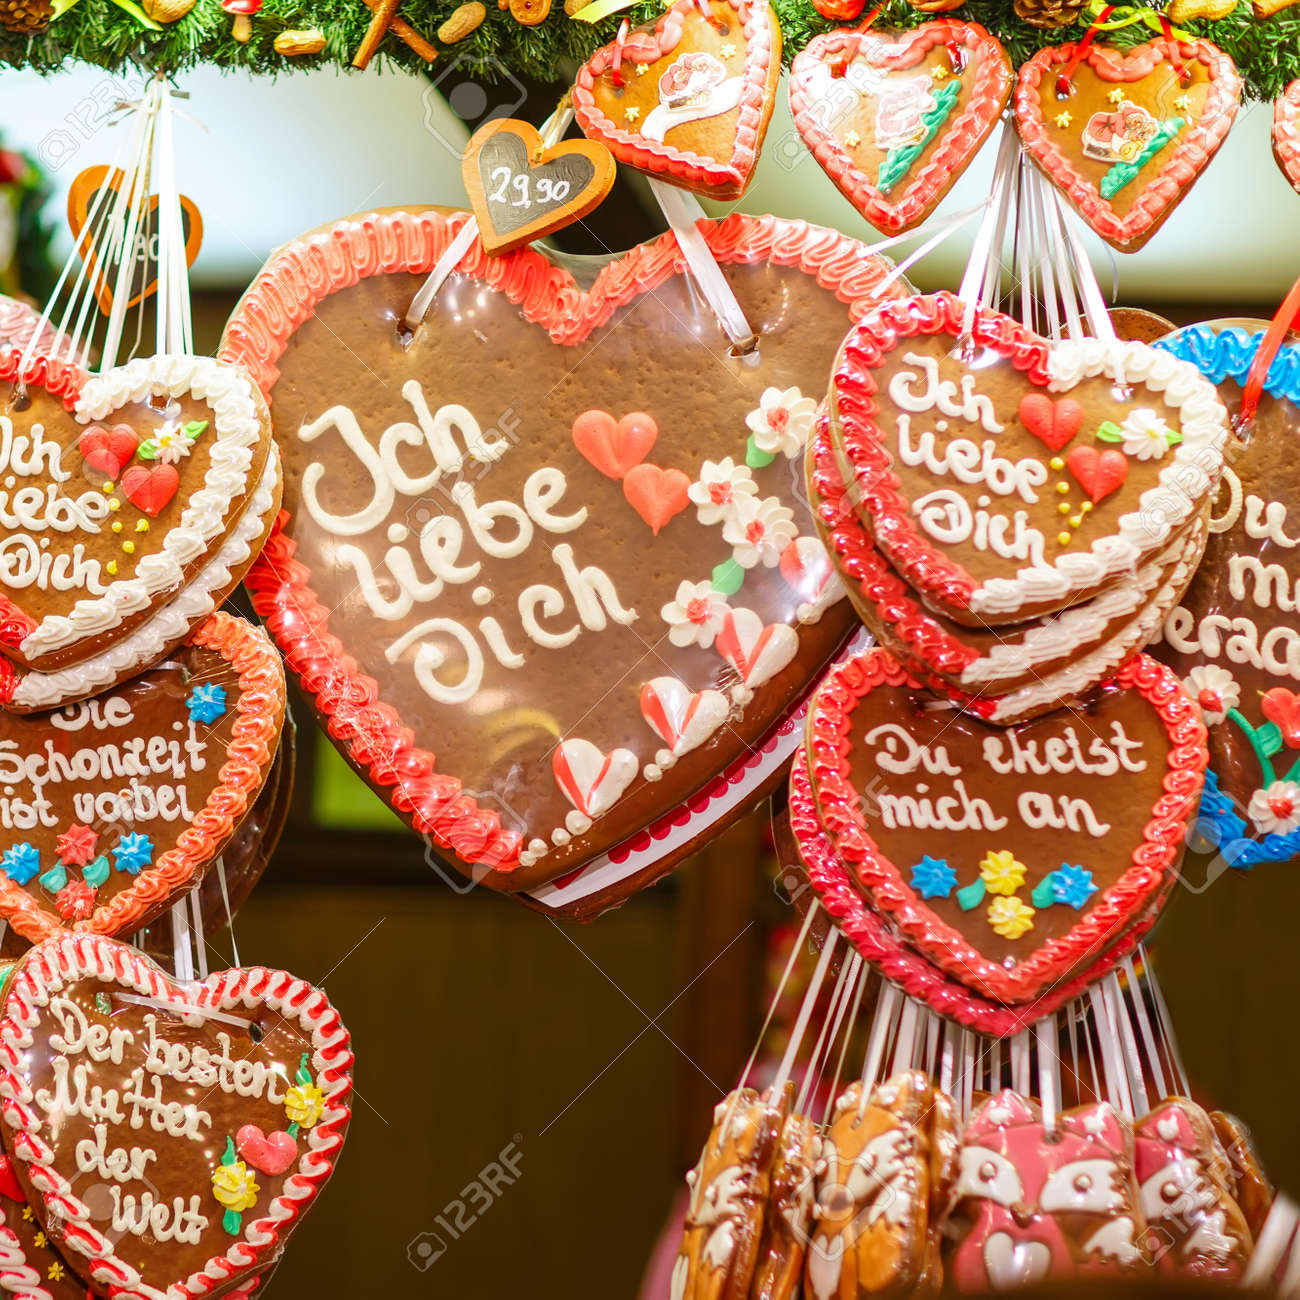 Nuremberg Christmas Market.Gingerbread Hearts At Nuremberg Christmas Market